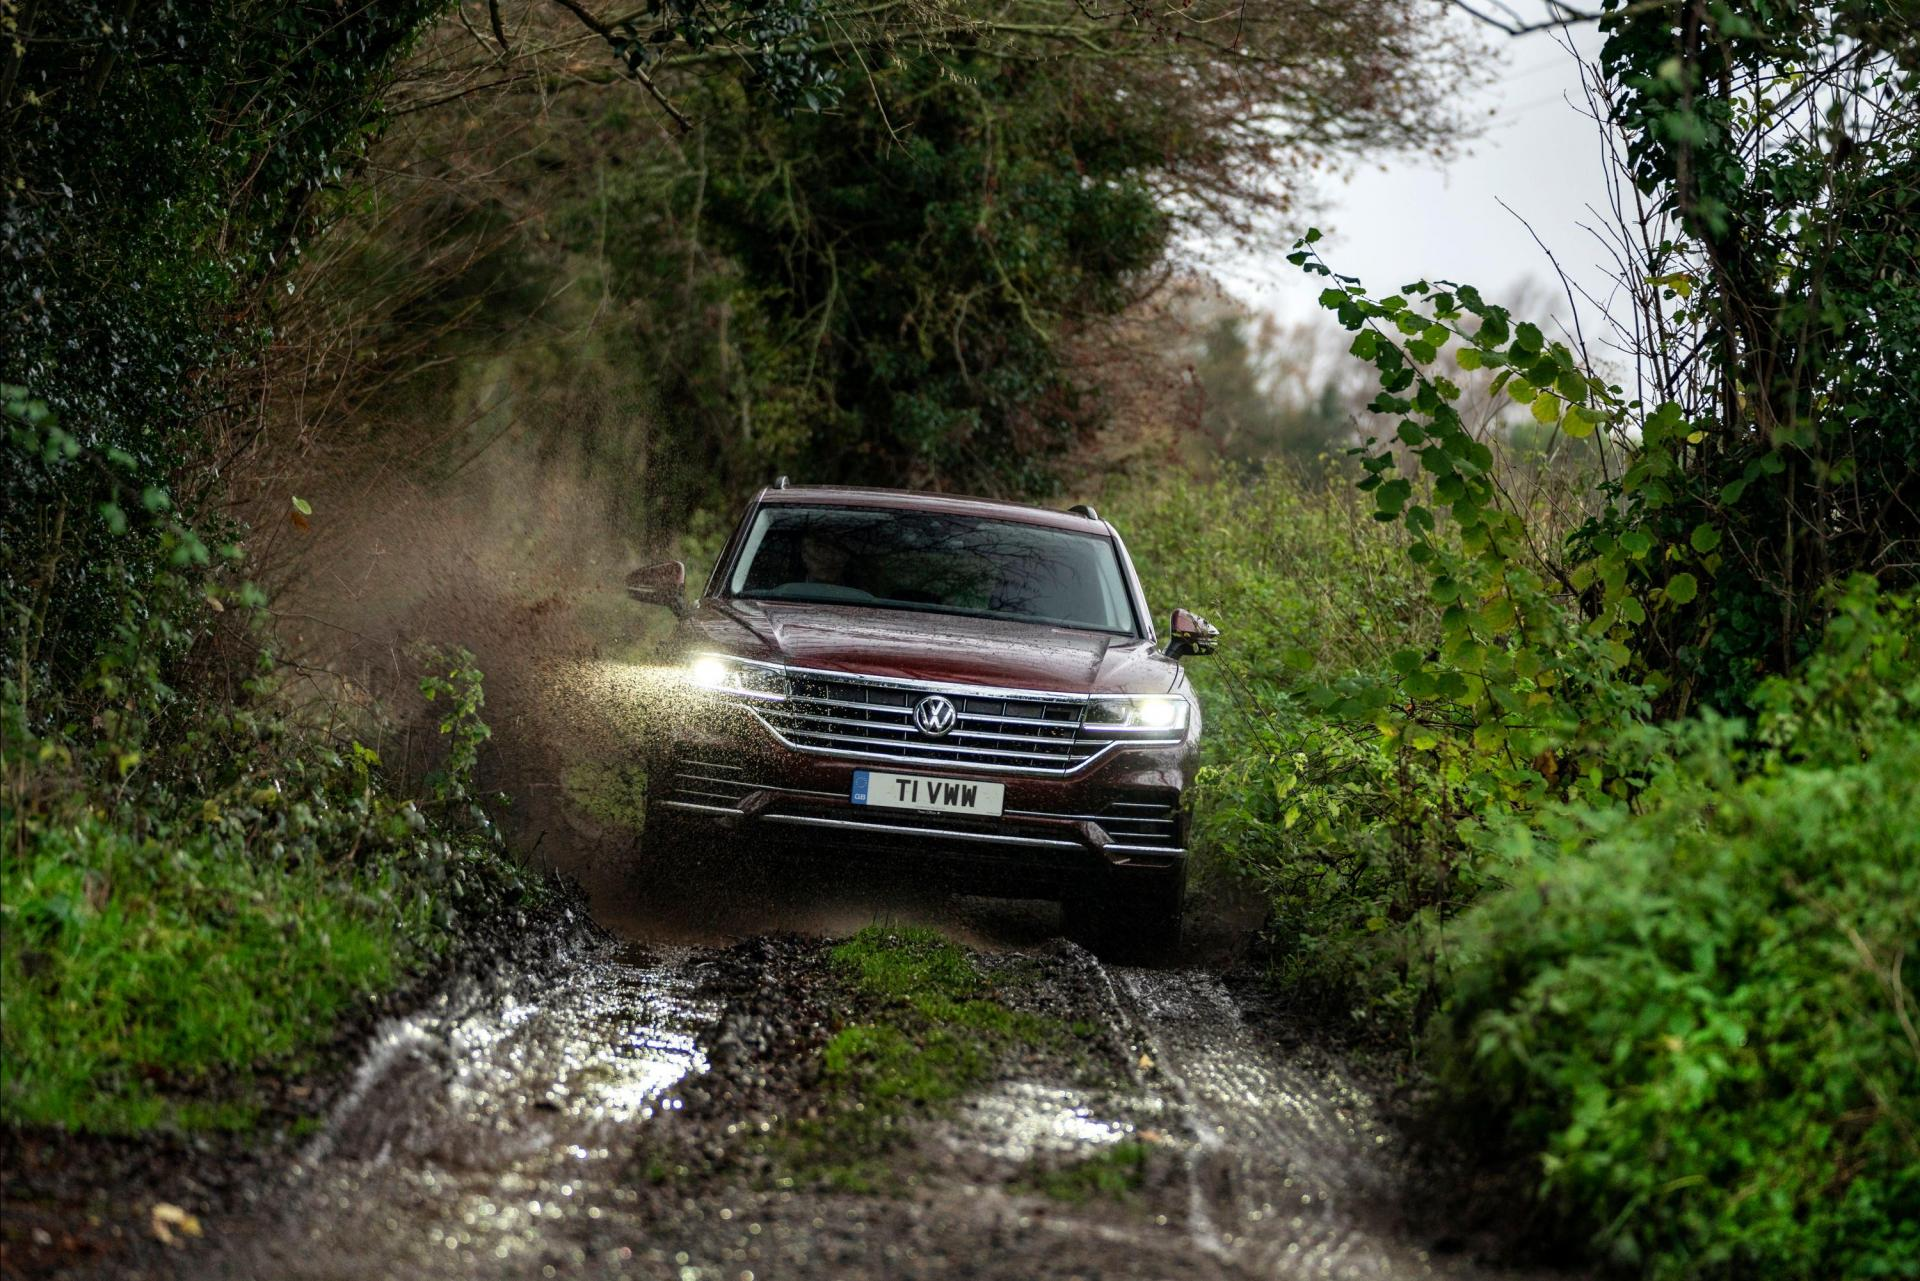 Permanent four-wheel-drive means the Touareg is well suited to tricky terrain.